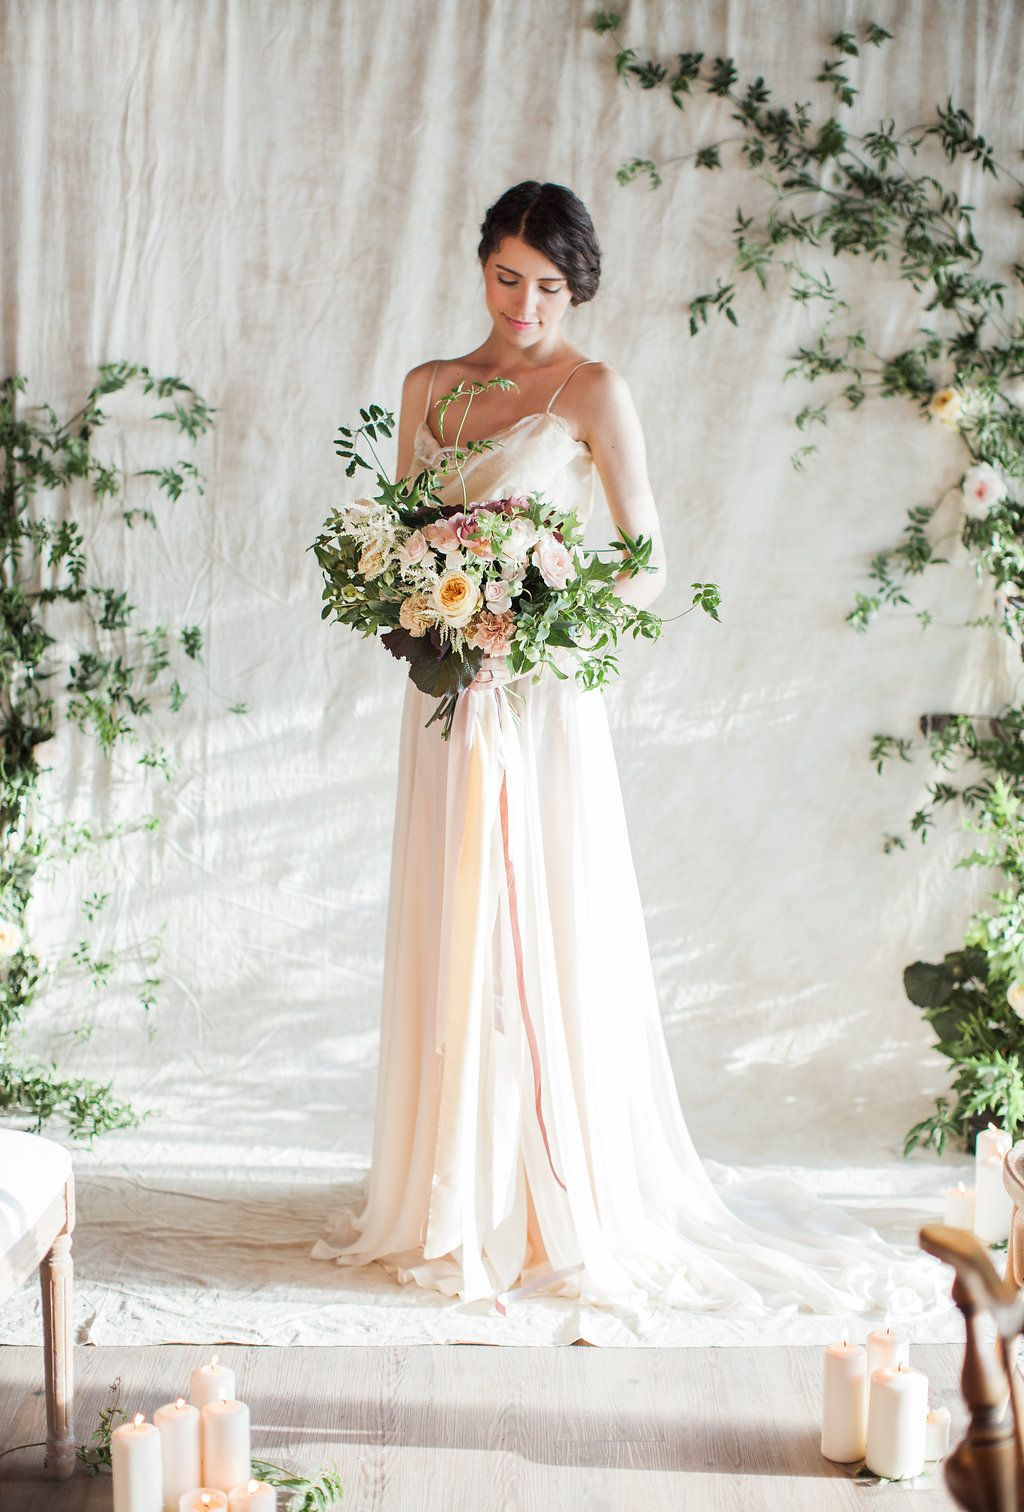 Ellie // Silk, two piece, bohemian wedding dress by House